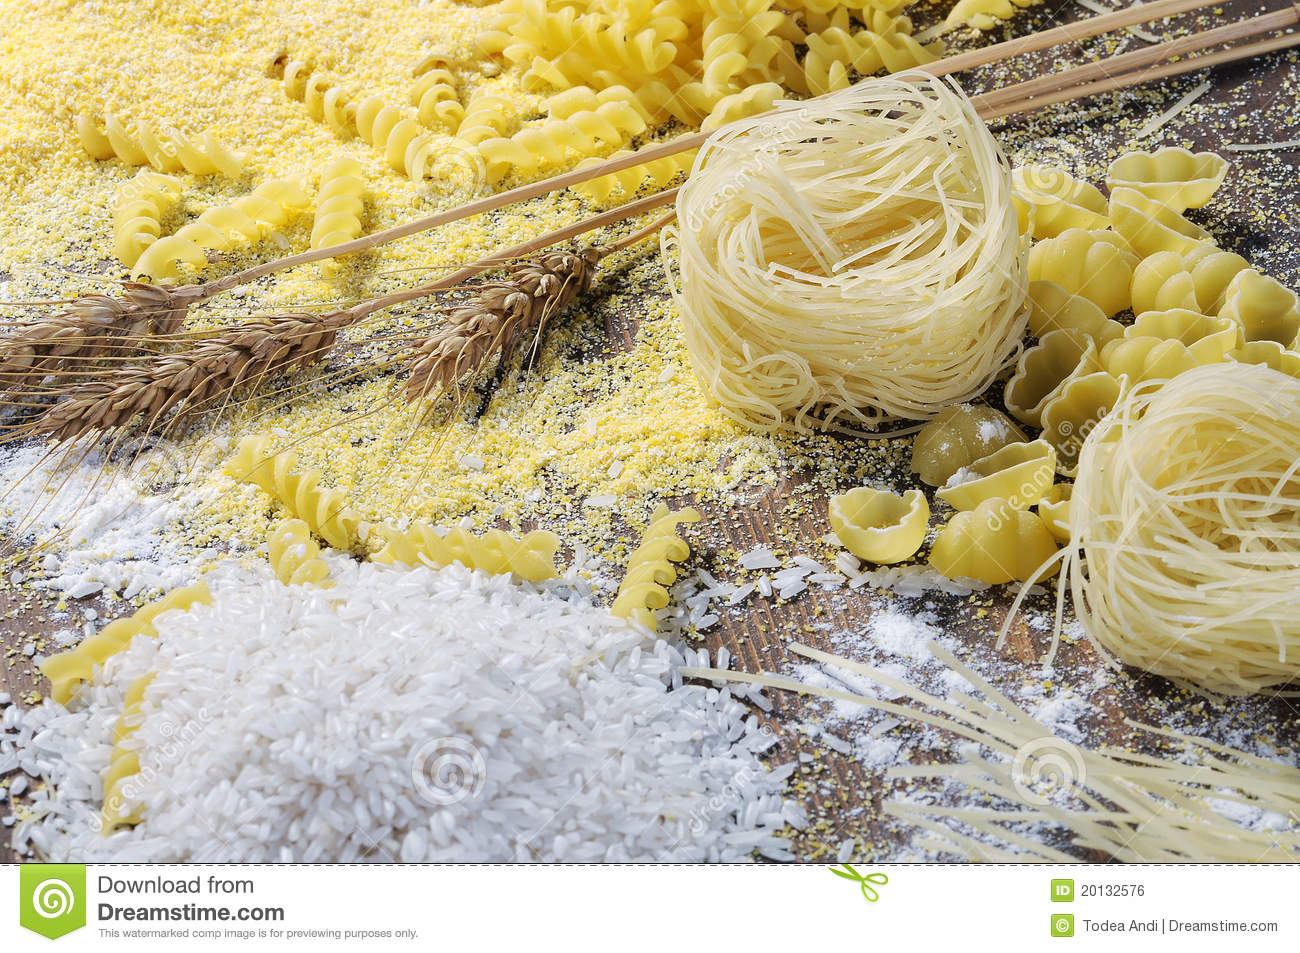 Noodles, pasta and rice